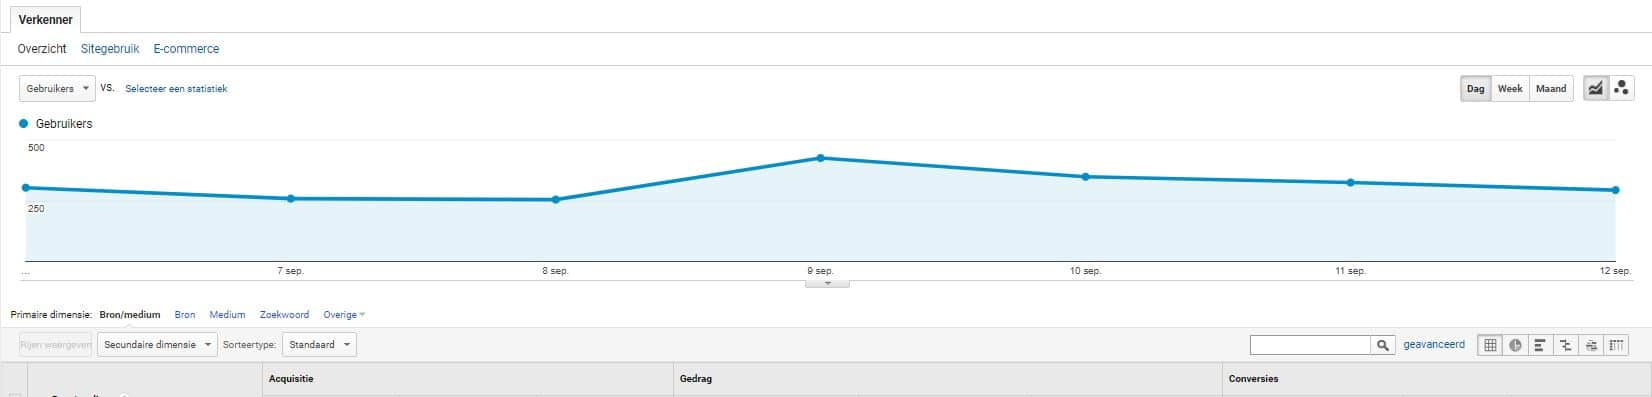 Data filteren d.m.v. zoekbox in Google analytics